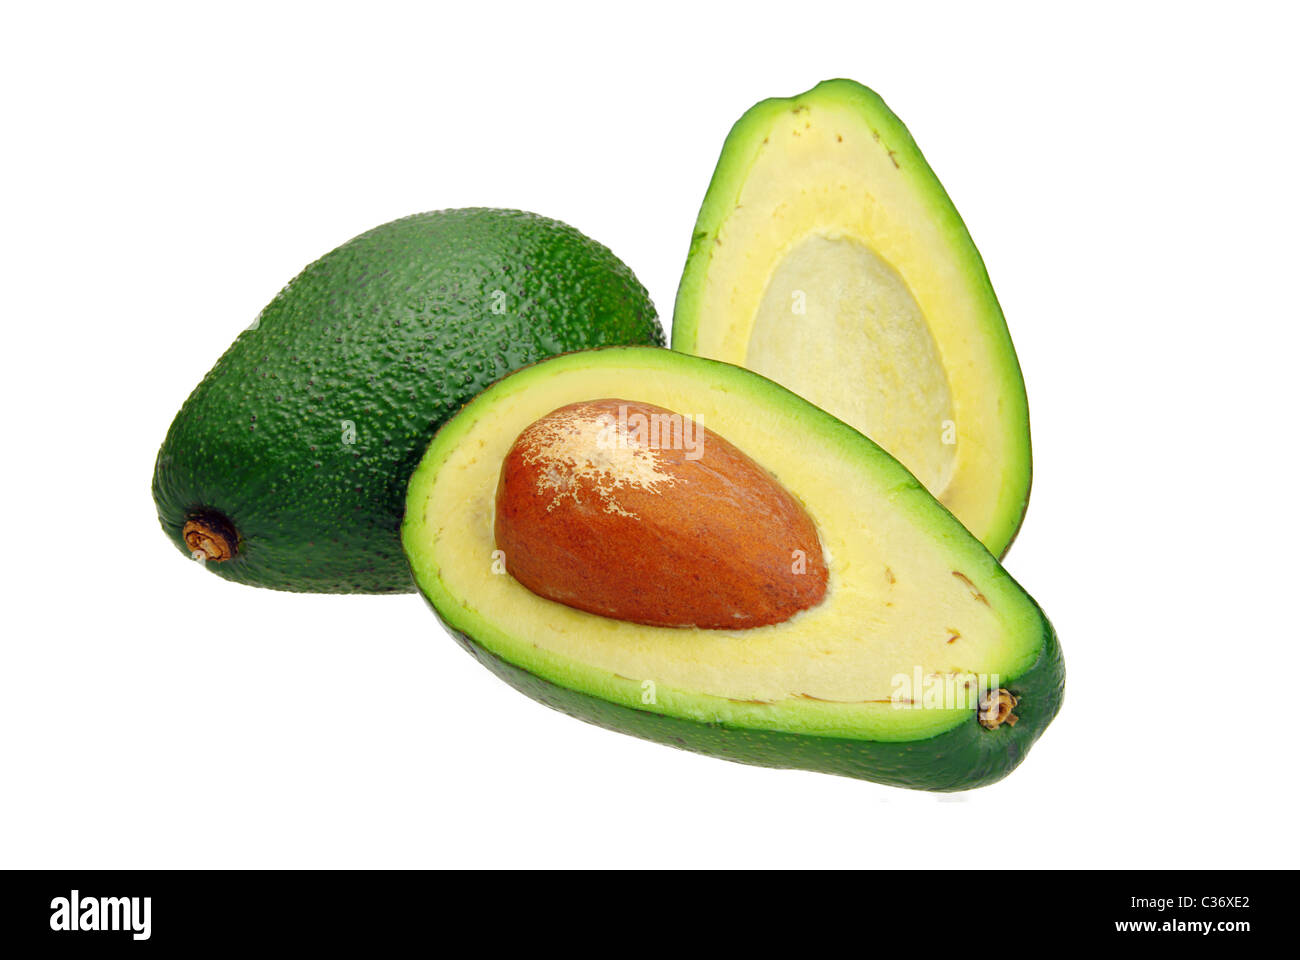 Avocado 09 - Stock Image